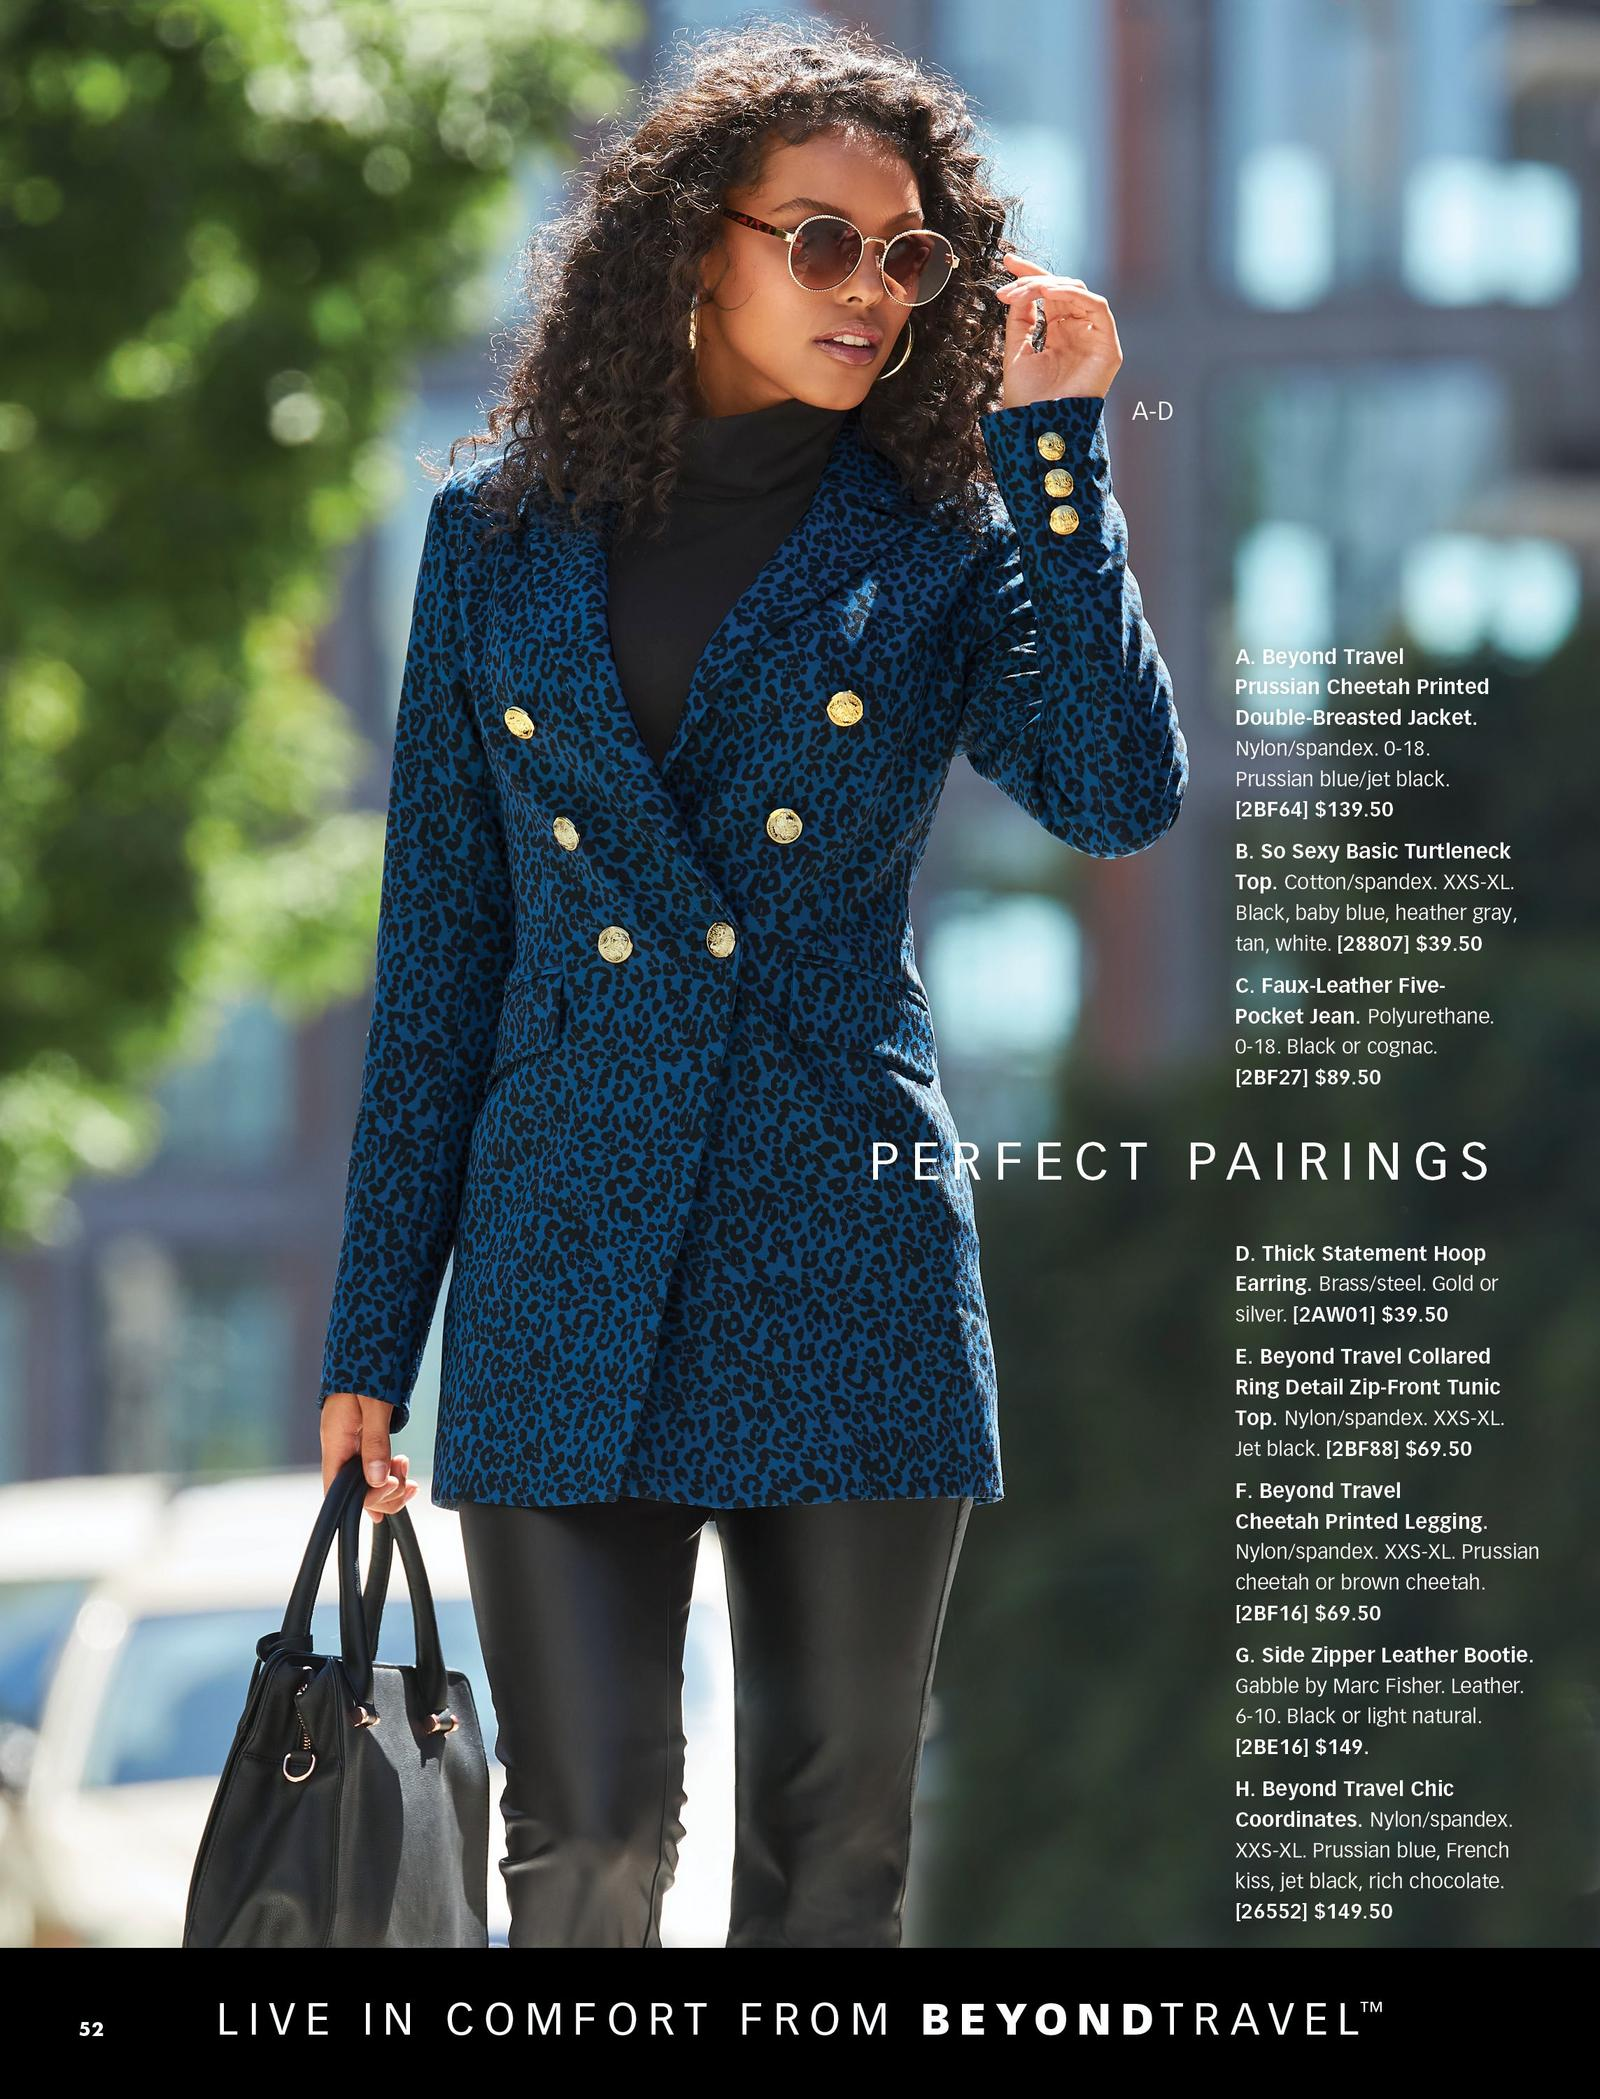 model wearing a blue animal print double-breasted jacket, black turtleneck top, black faux-leataher jeans, and gold hoop earrings.